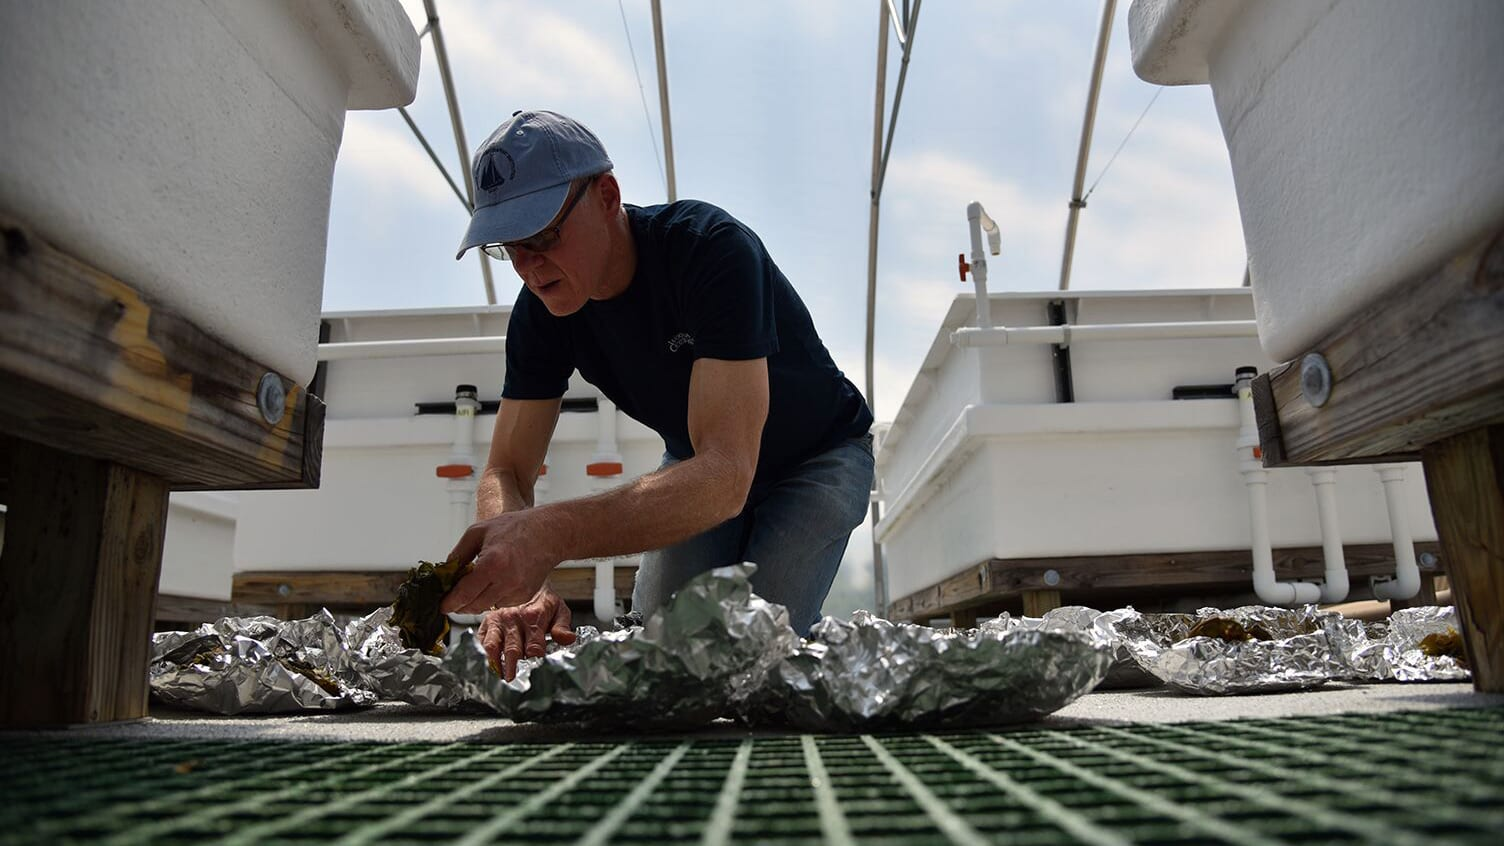 WHOI scientist Scott Lindell drying kelp that was recently harvested from a research farm in New England. (Photo by Veronique LaCapra, Woods Hole Oceanographic Institution)